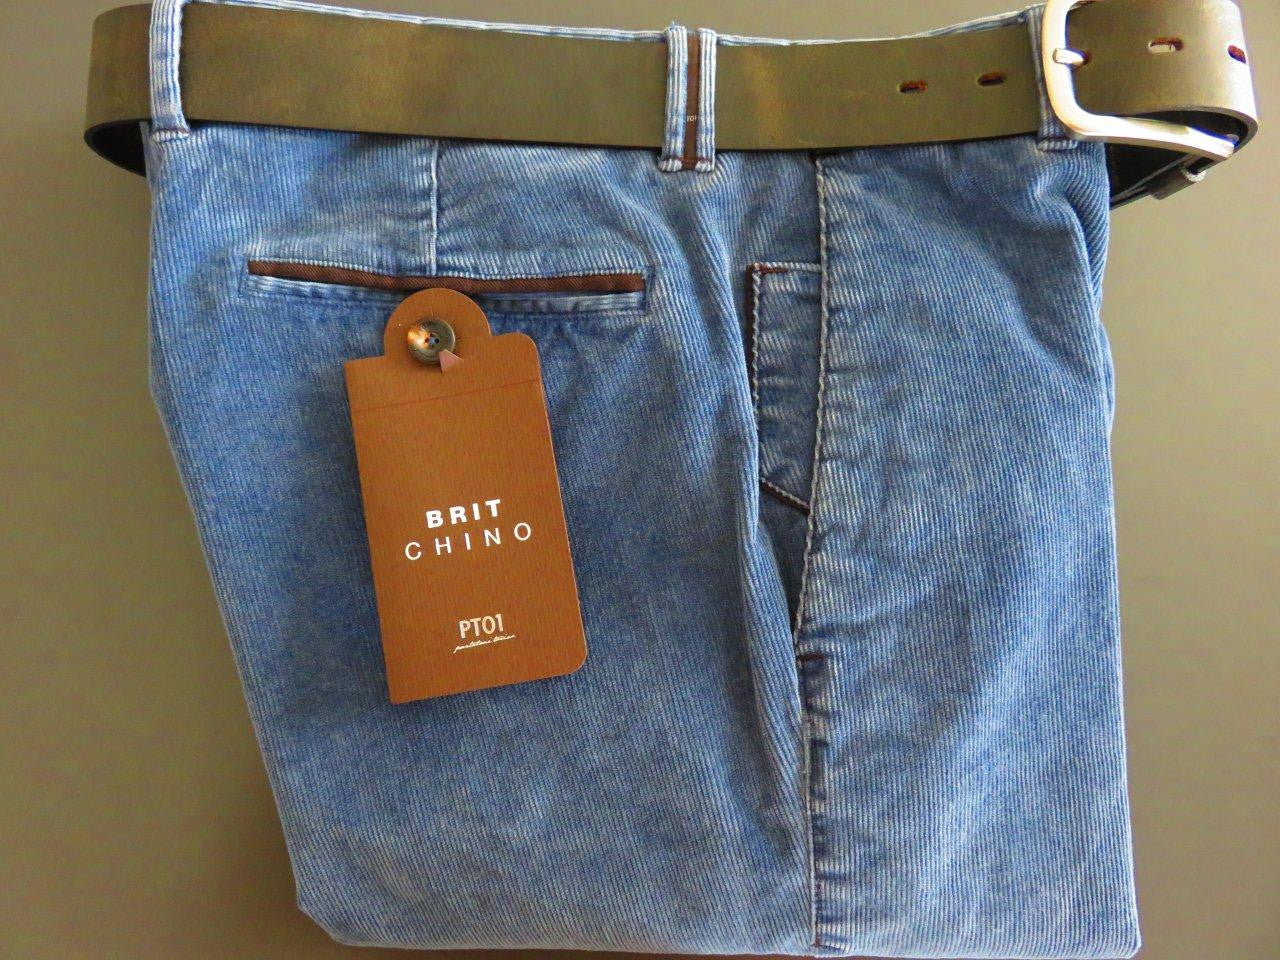 PT01 Pantaloni Torino - Brit Chino with belt